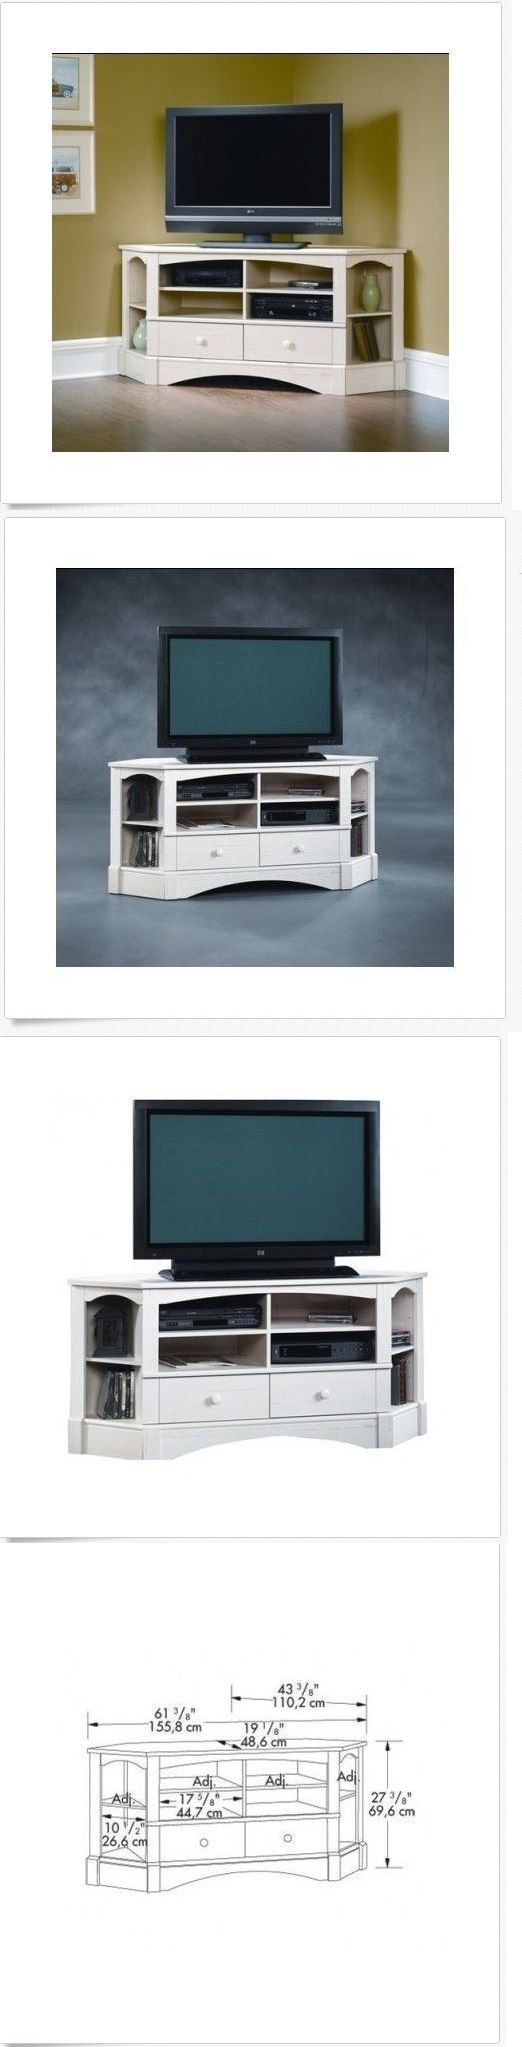 Entertainment Units TV Stands: Rustic Tv Stand Corner Entertainment Center Antique Wood Media Console Cabinet BUY IT NOW ONLY: $239.99